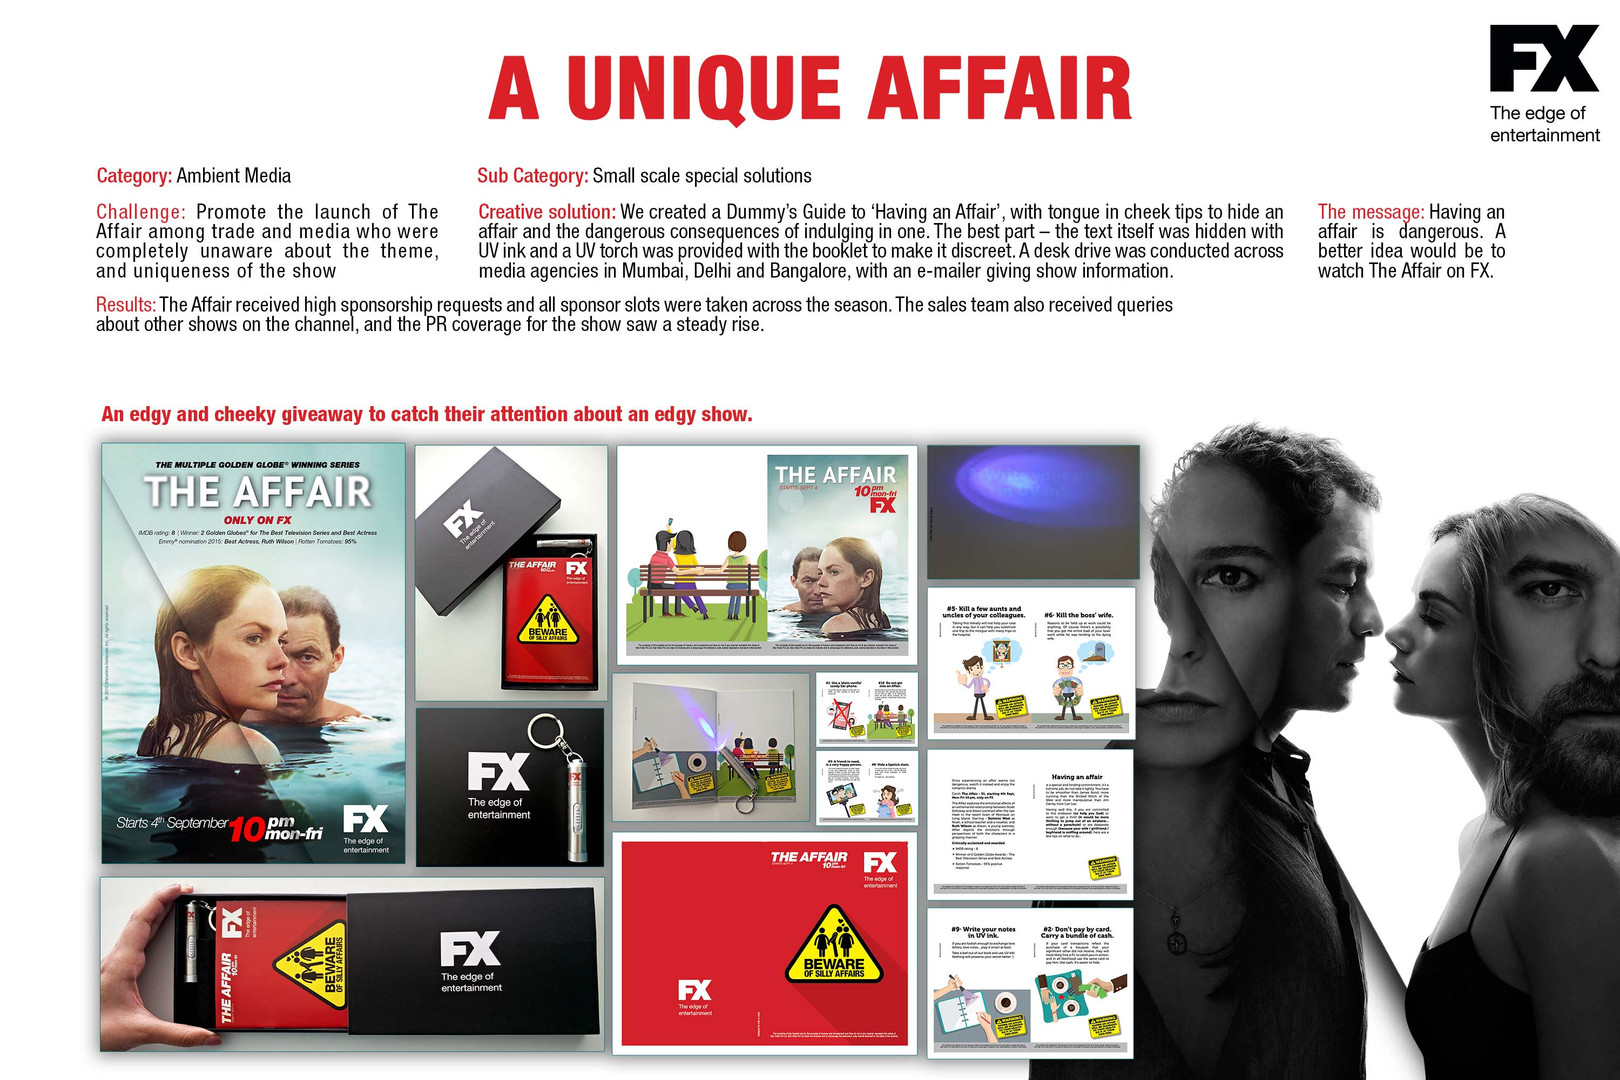 The Affair trade marketing